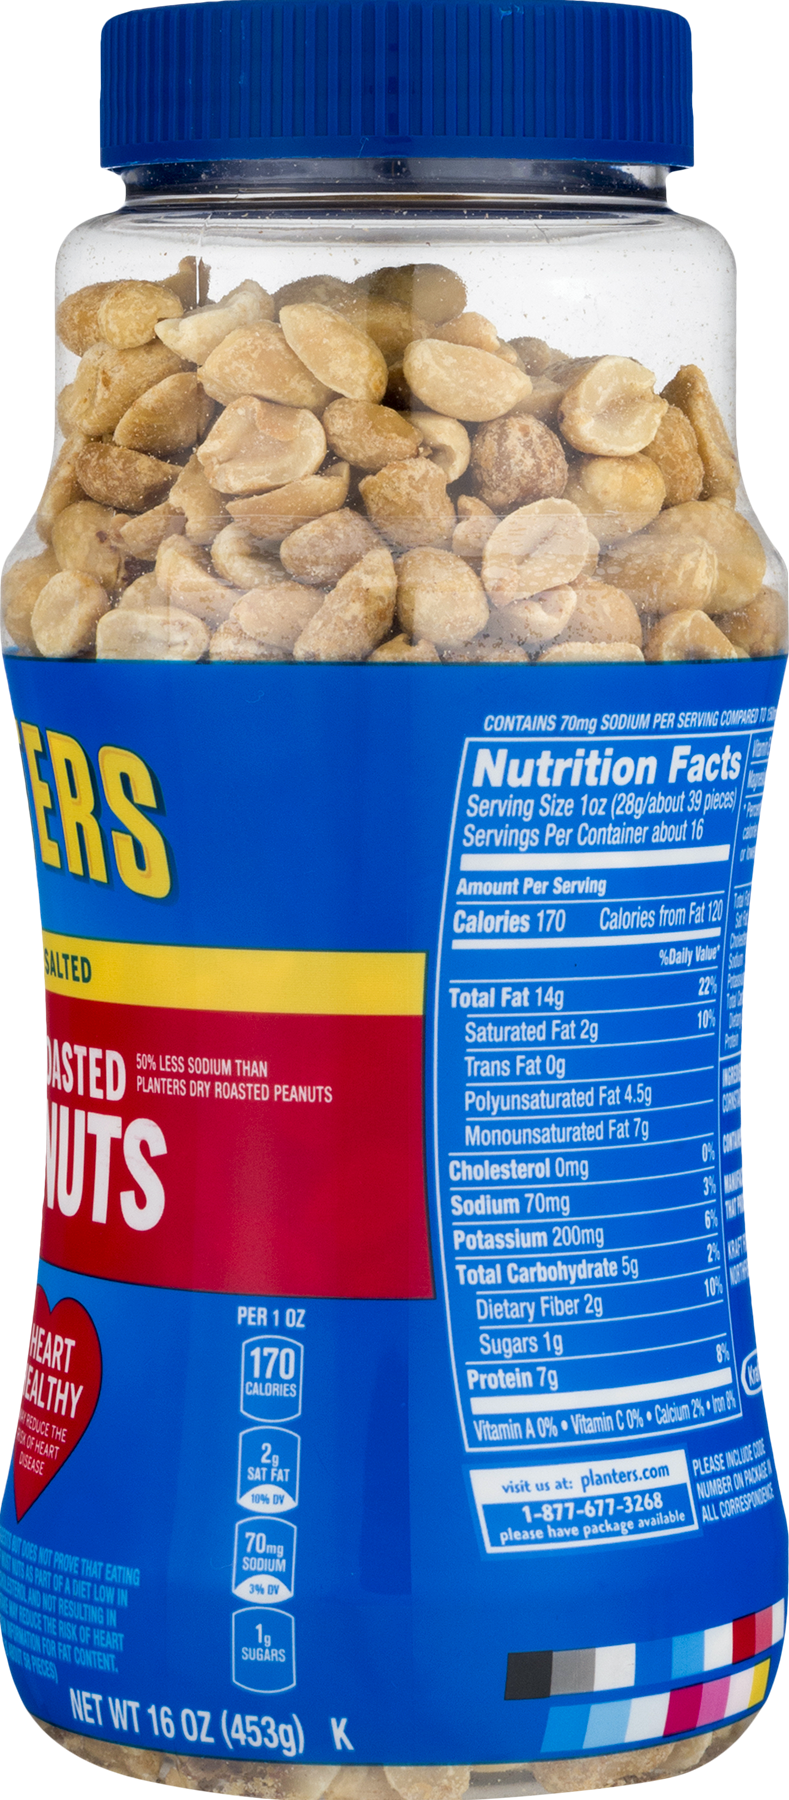 Cashews Planters cashew nuts have grams of protein in every delicious ounce. Whether you prefer your cashews salted or you like your cashews lightly salted, Planters has a cashew snack for you.